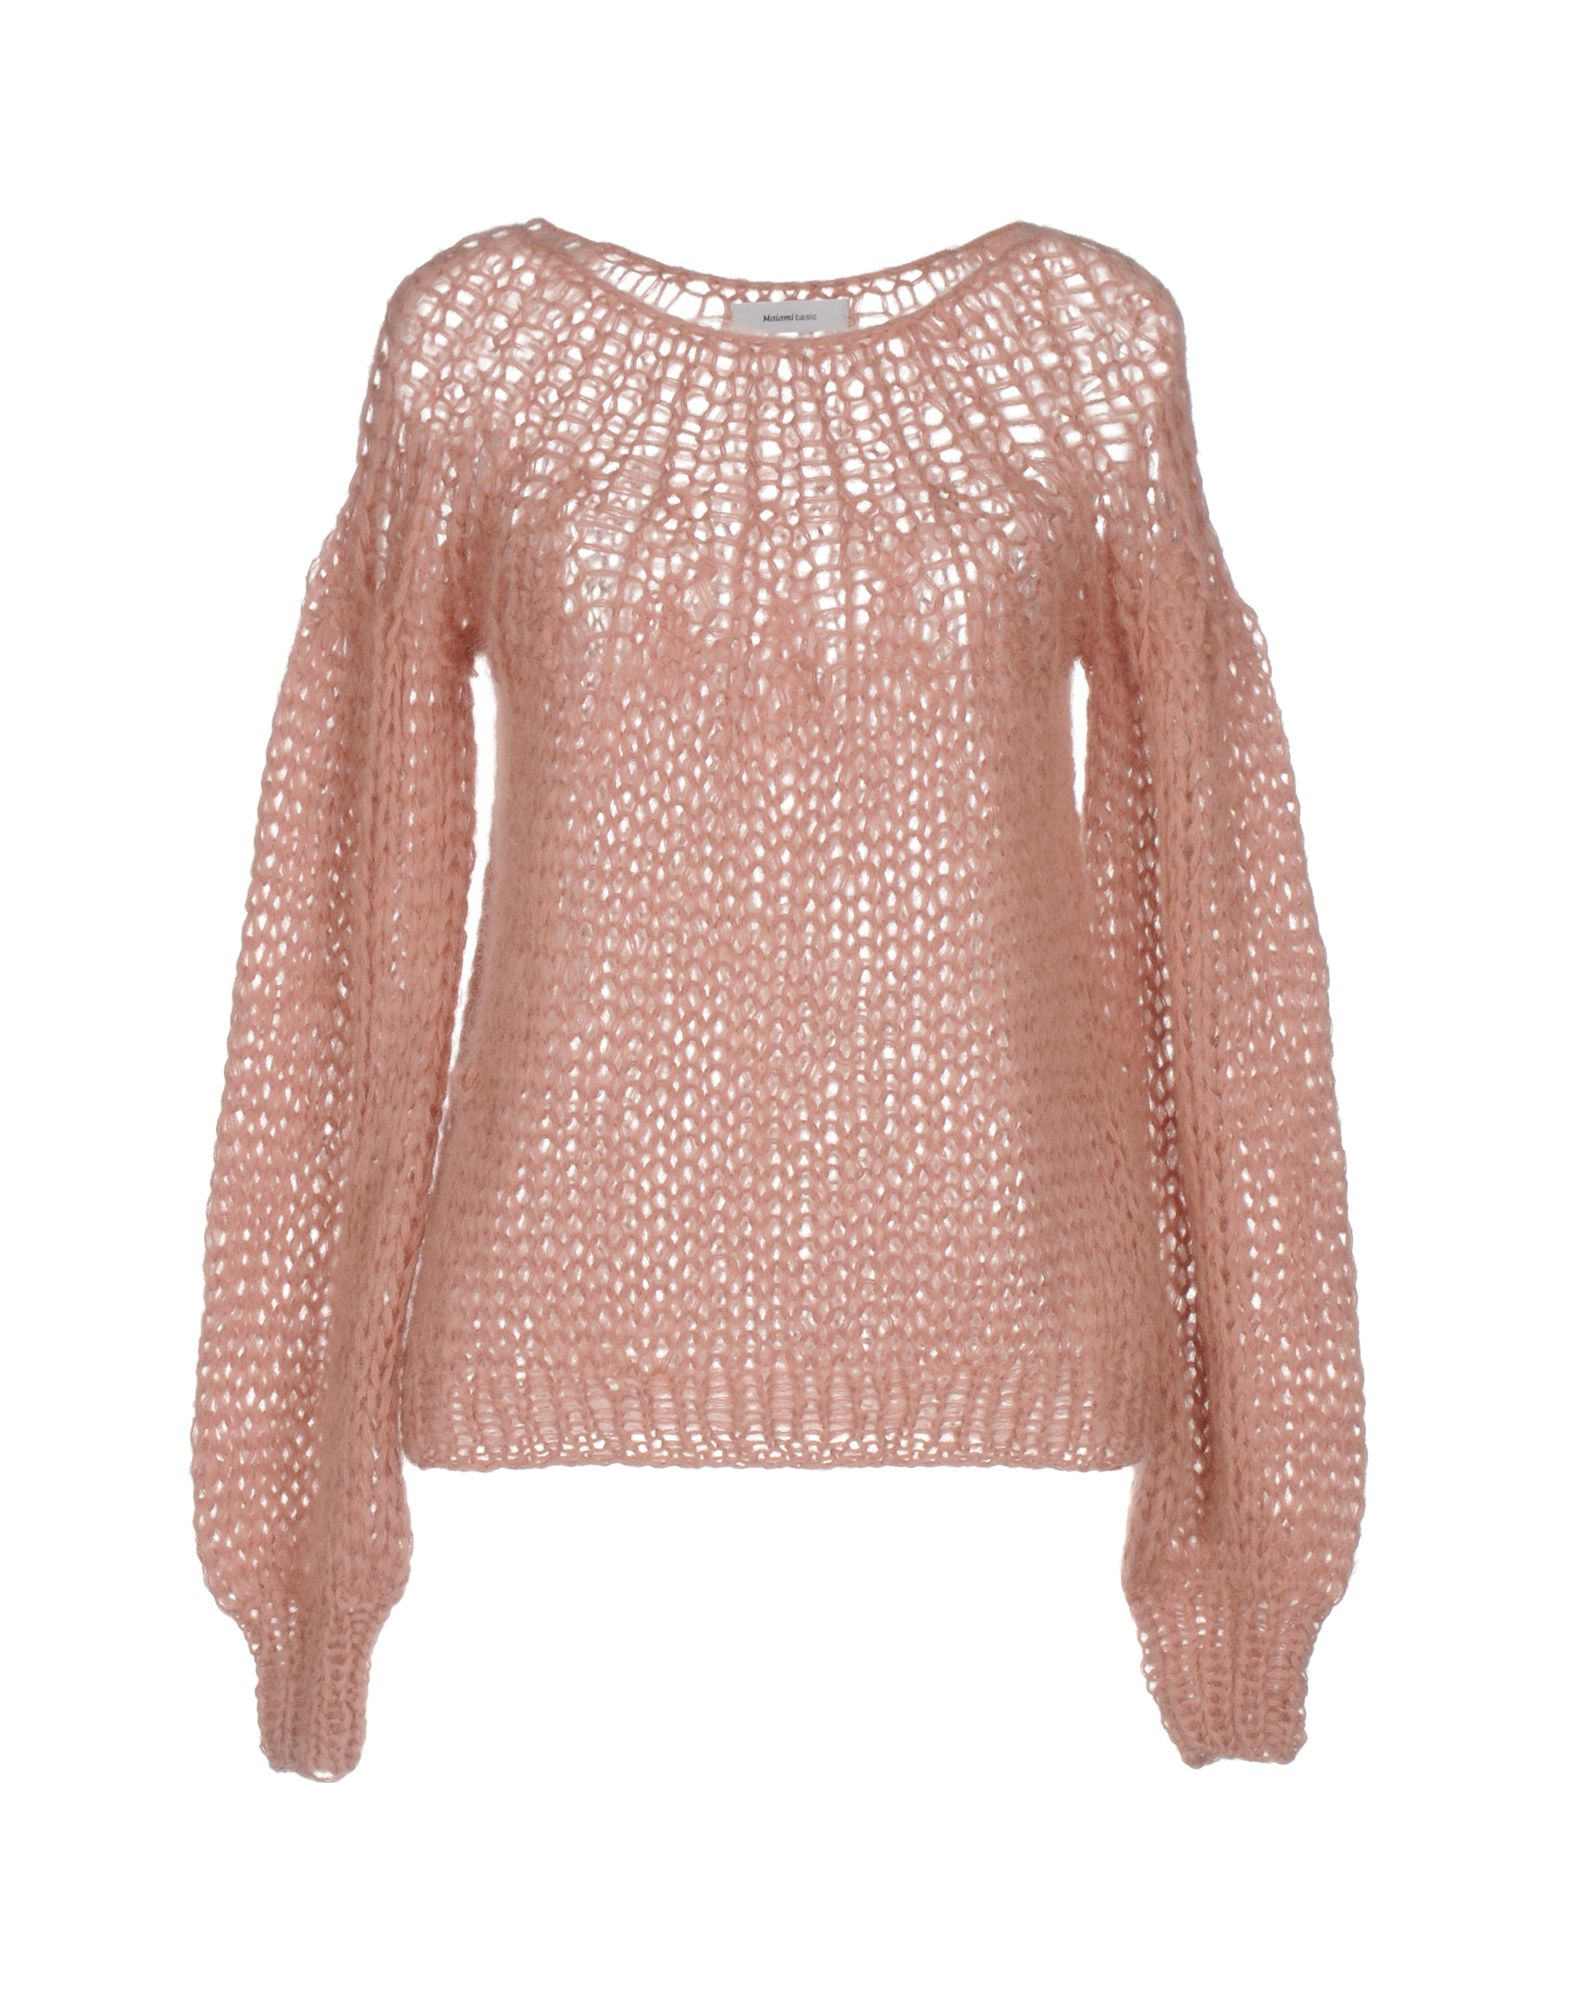 MAIAMI Sweater in Pink